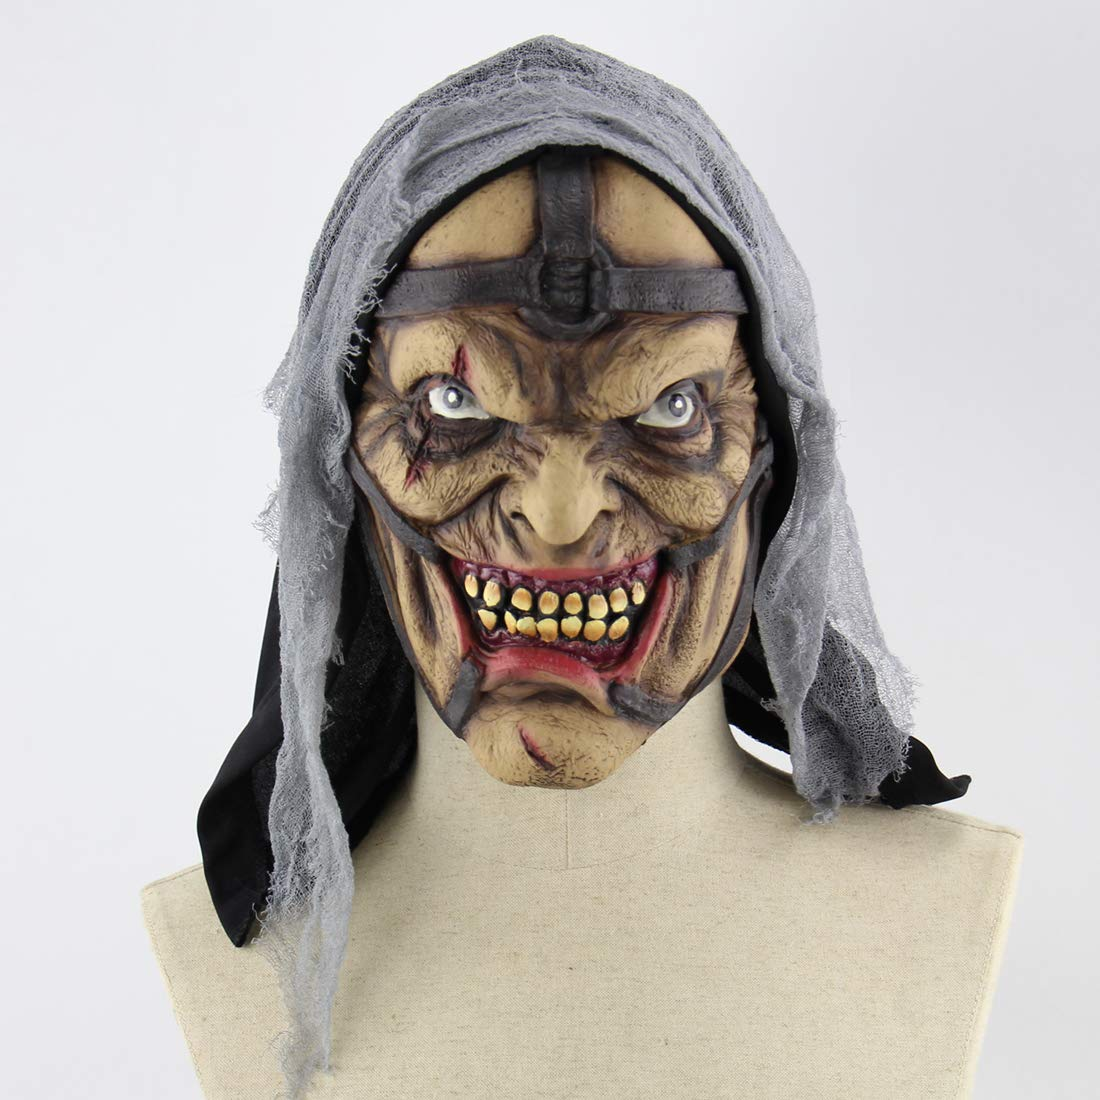 Realistic Scary Halloween Masks.2018 Scary Halloween Mask Realistic Clown Halloween Face Masks With Hair For Adults And Man Halloween Masquerade Cosplay Costume Mask Abnormal Man